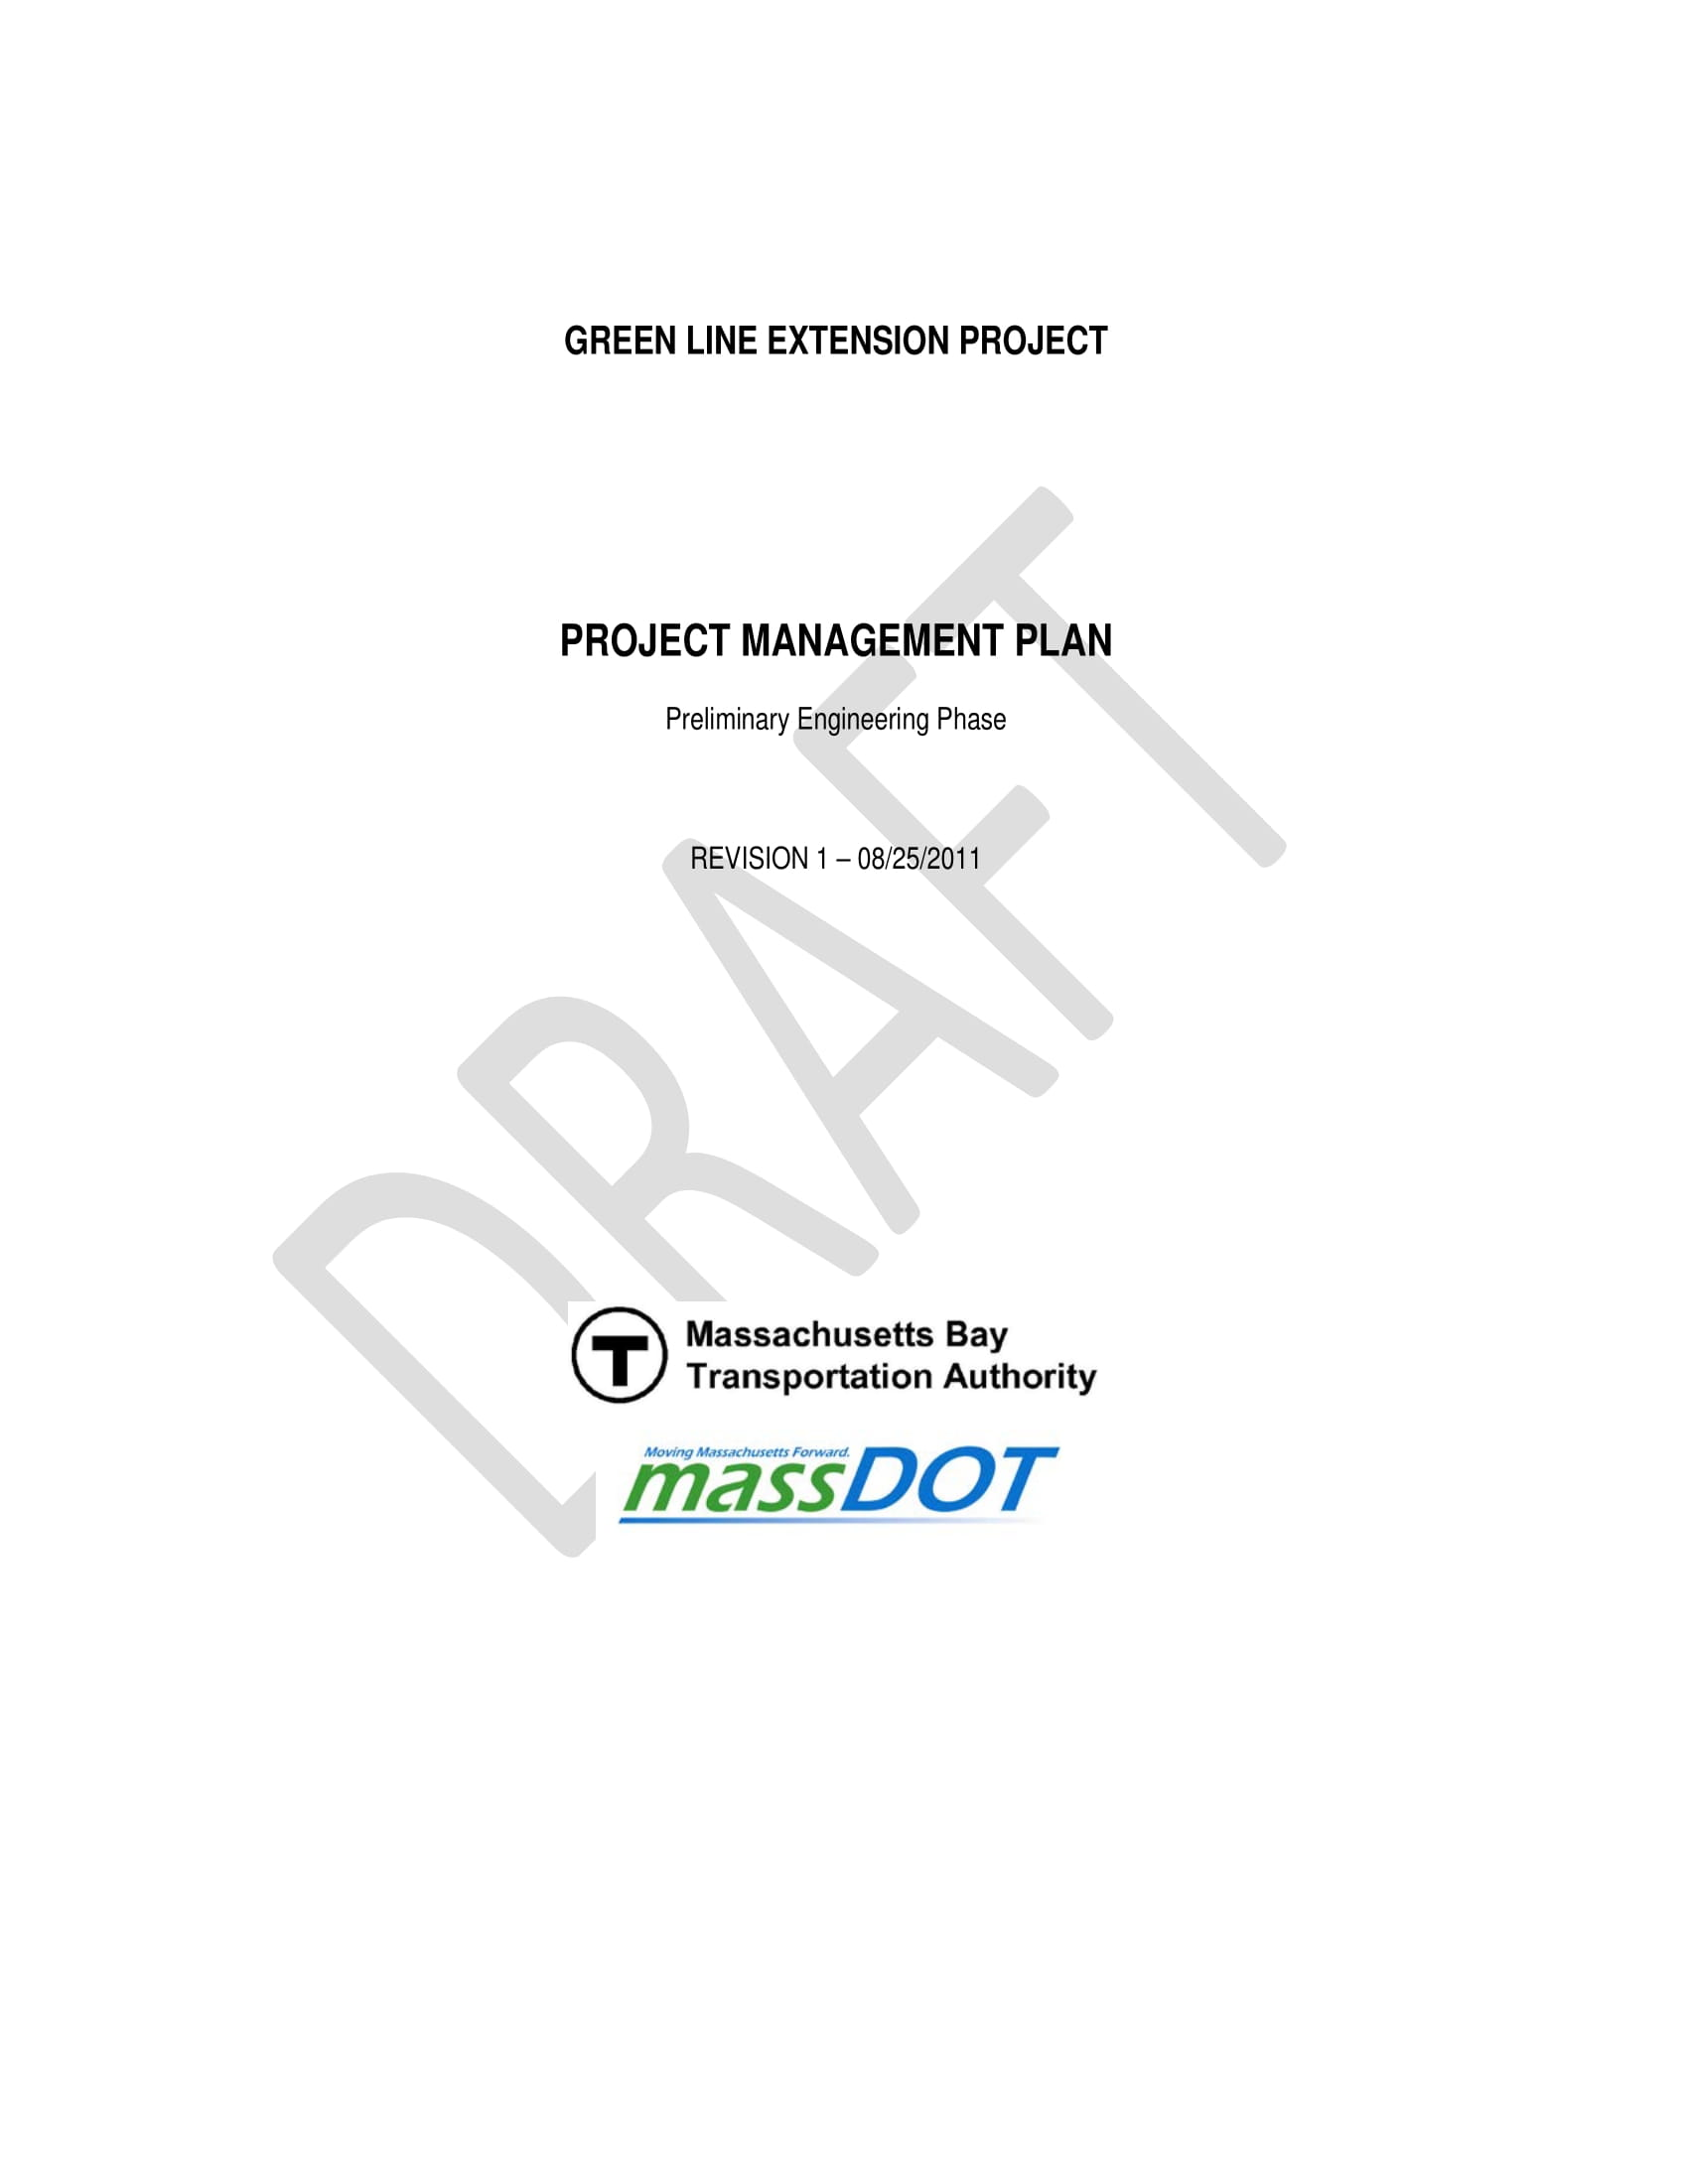 18 Project Management Plan Examples In